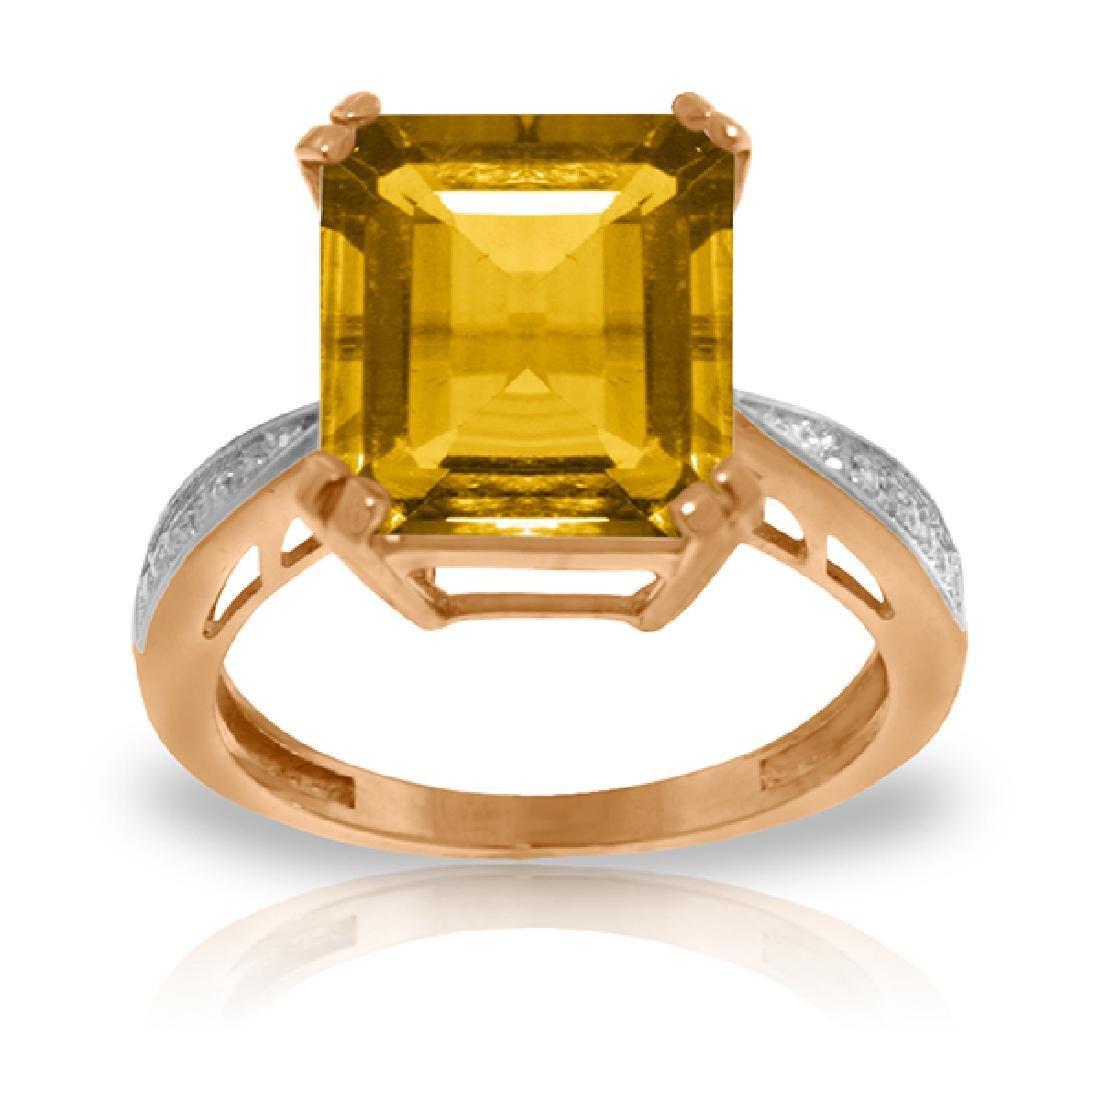 Genuine 5.62 ctw Citrine & Diamond Ring Jewelry 14KT